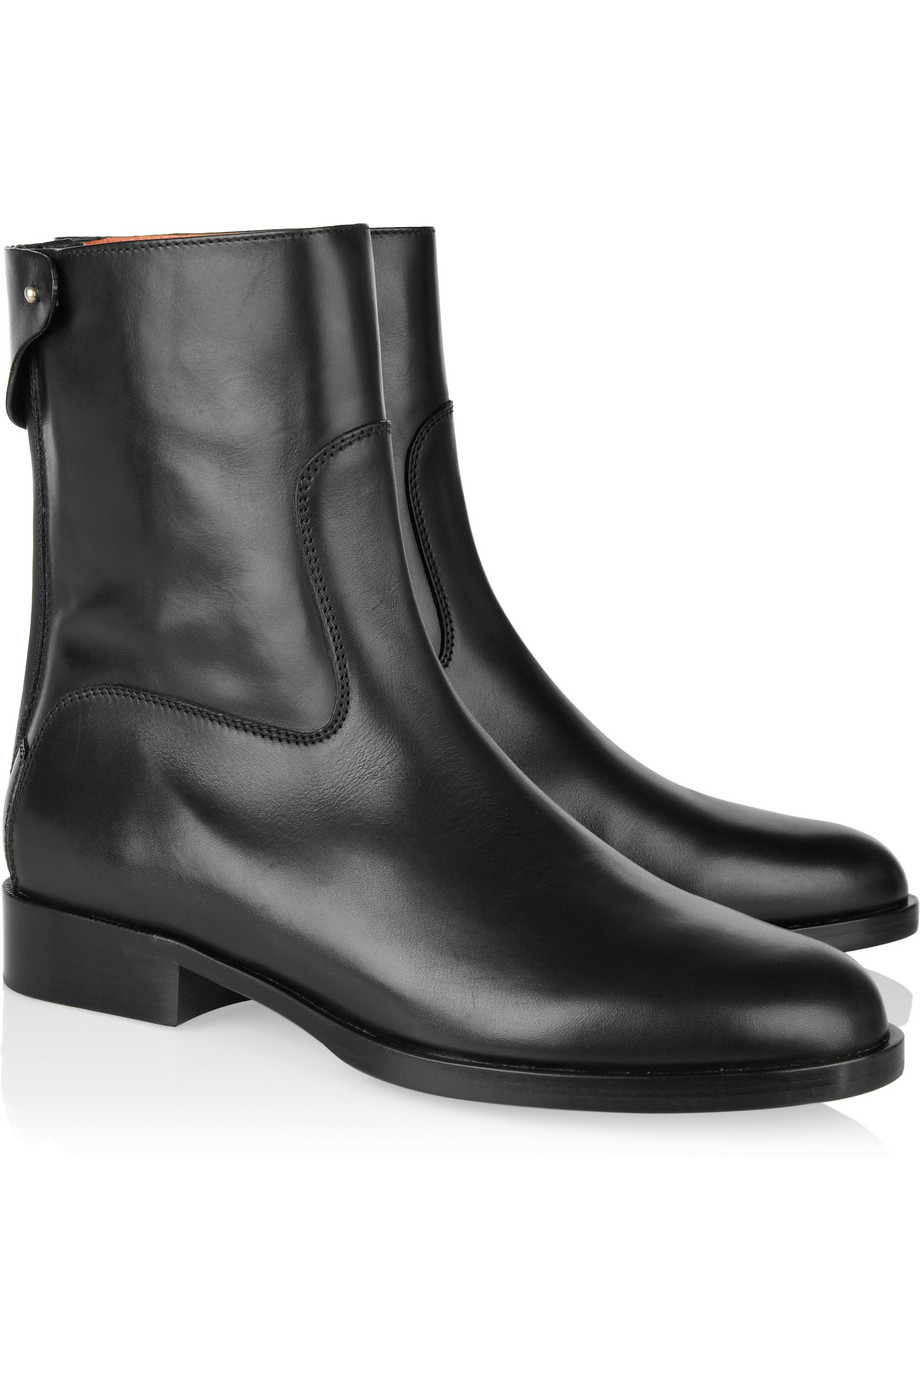 5fc4482edb1 Lyst - Chloé Leather Ankle Boots in Black